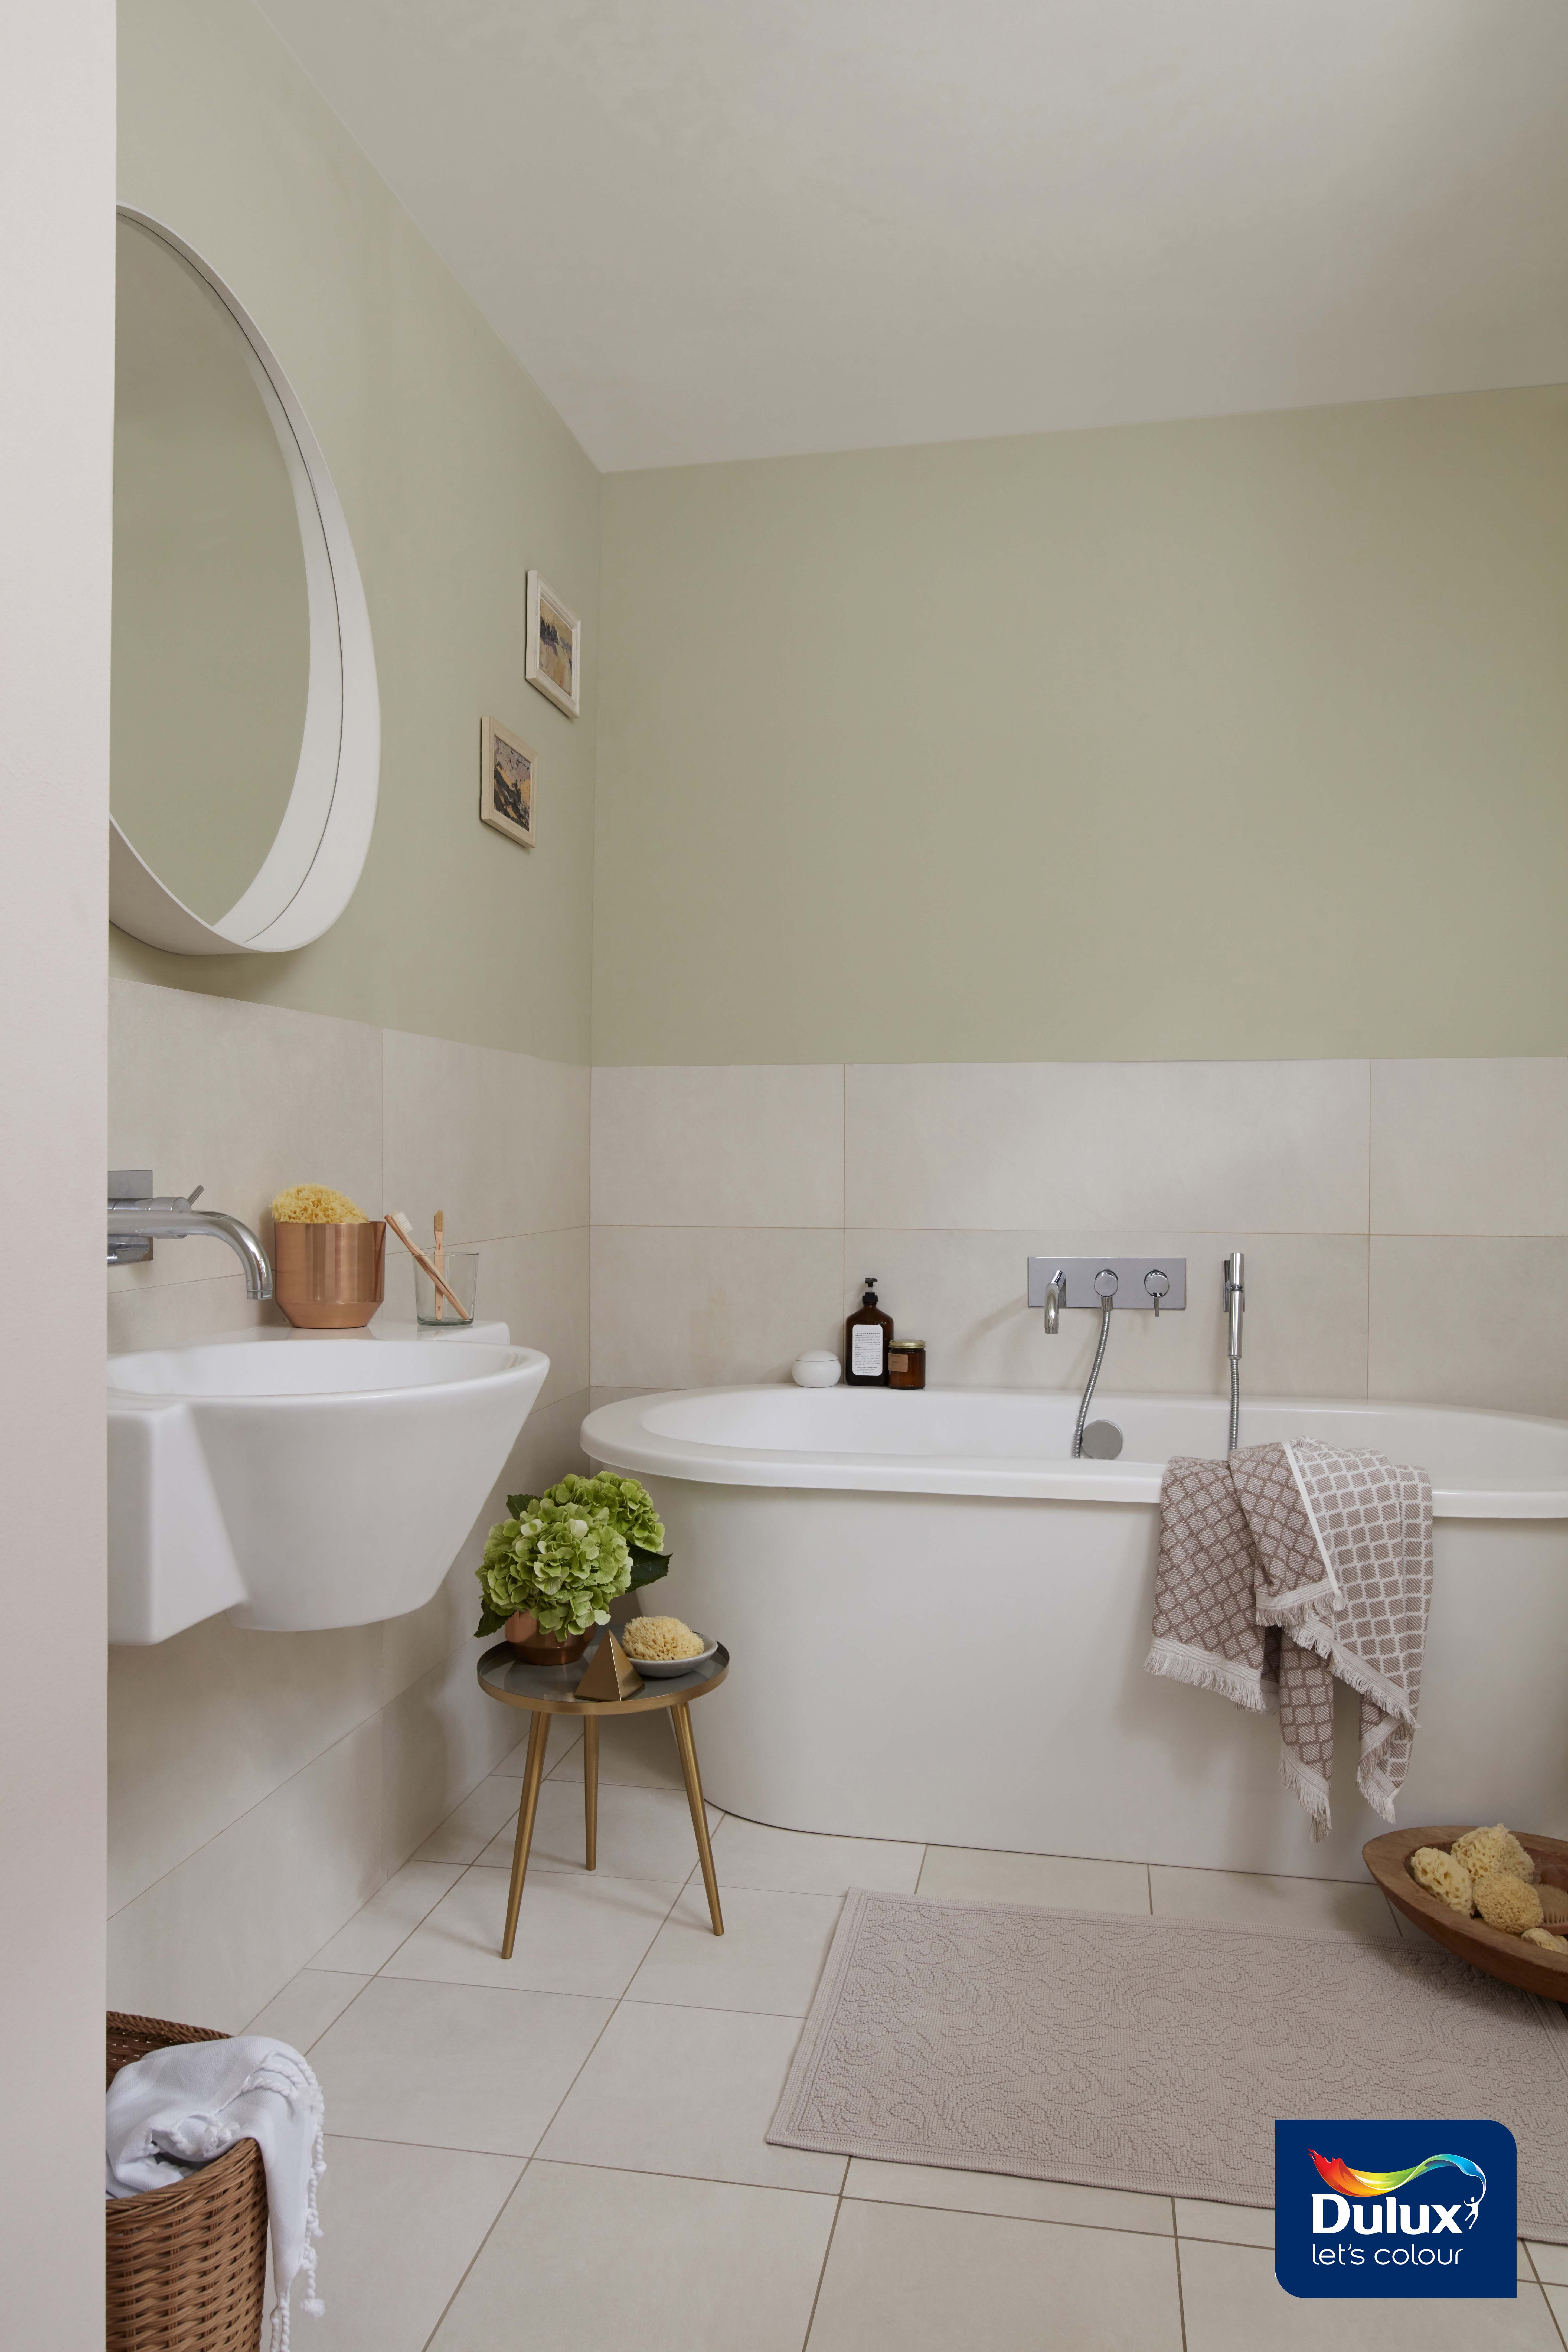 Do You Have A Small Bathroom But Still Want A Beautiful Colour Scheme Click Here To Find Out How T Bathroom Color Schemes Small Bathroom Colors Small Bathroom